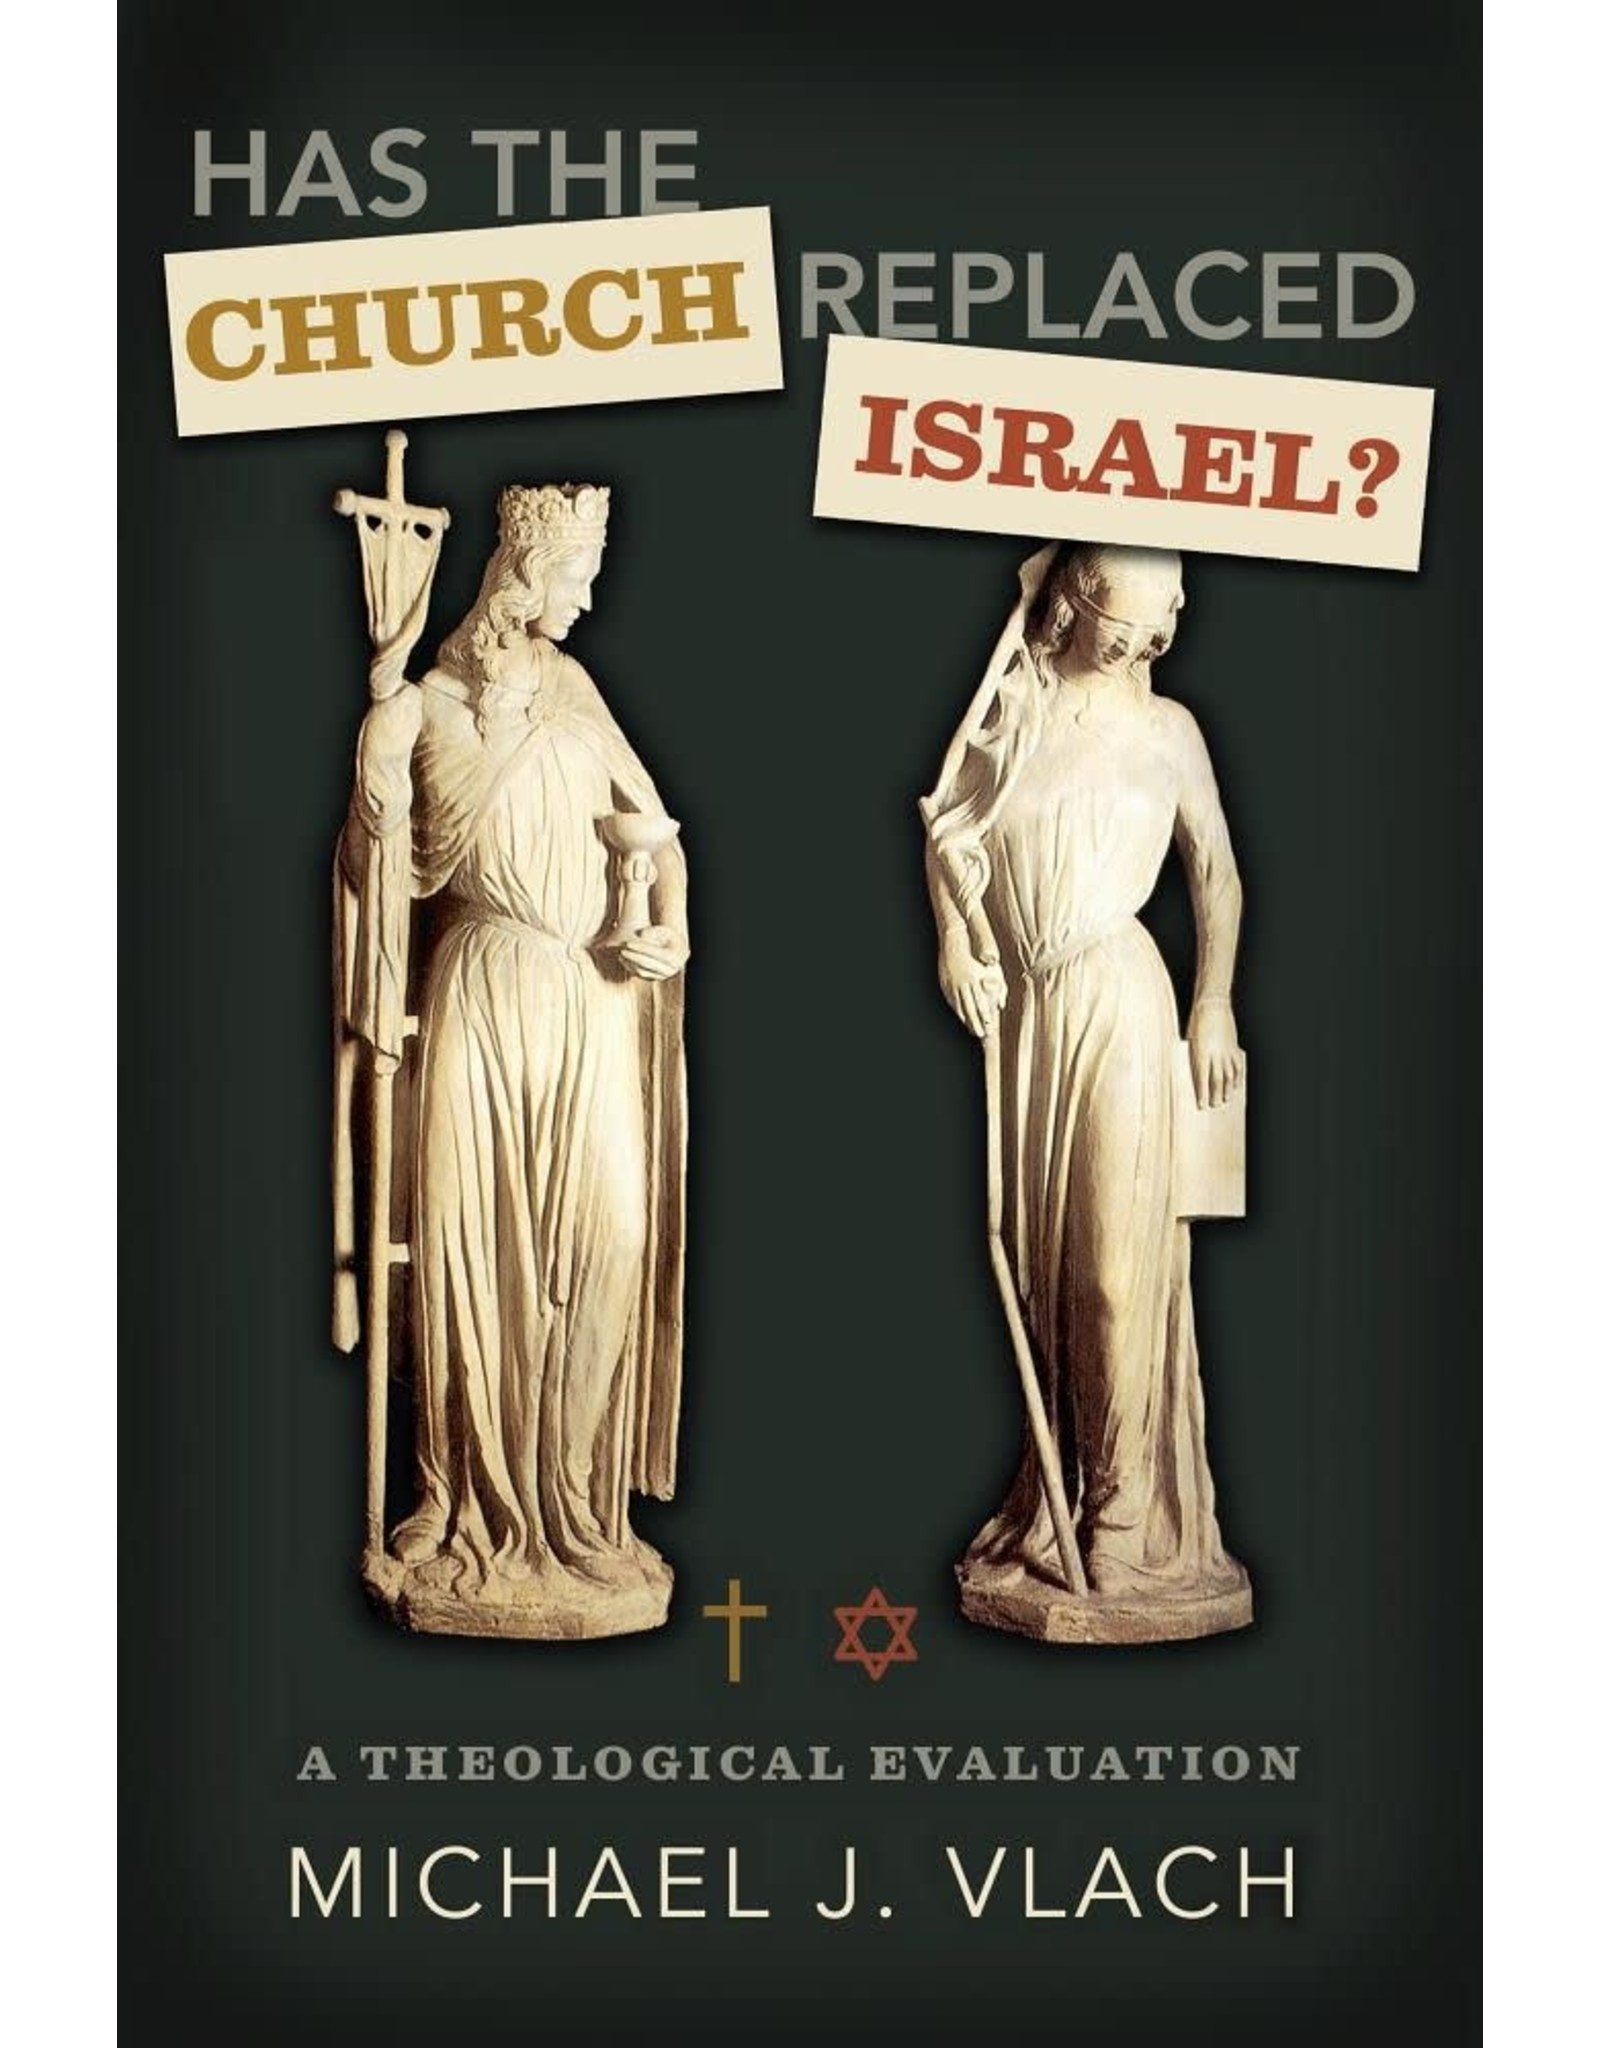 Vlach Has the Church Replaced Israel?